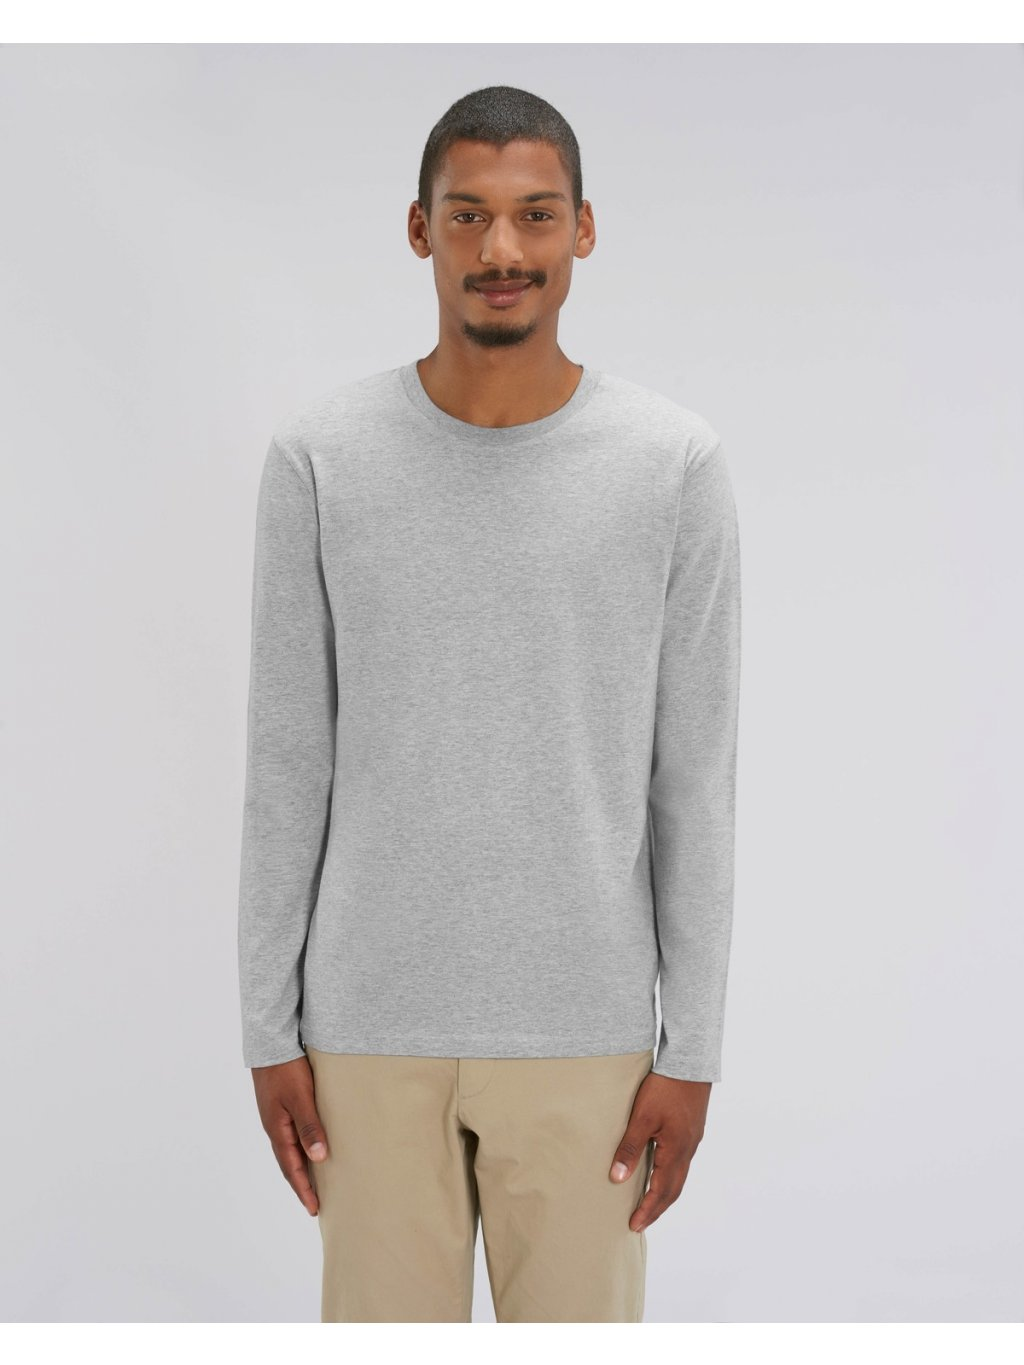 Stanley Shuffler Heather Grey Studio Front Main 0